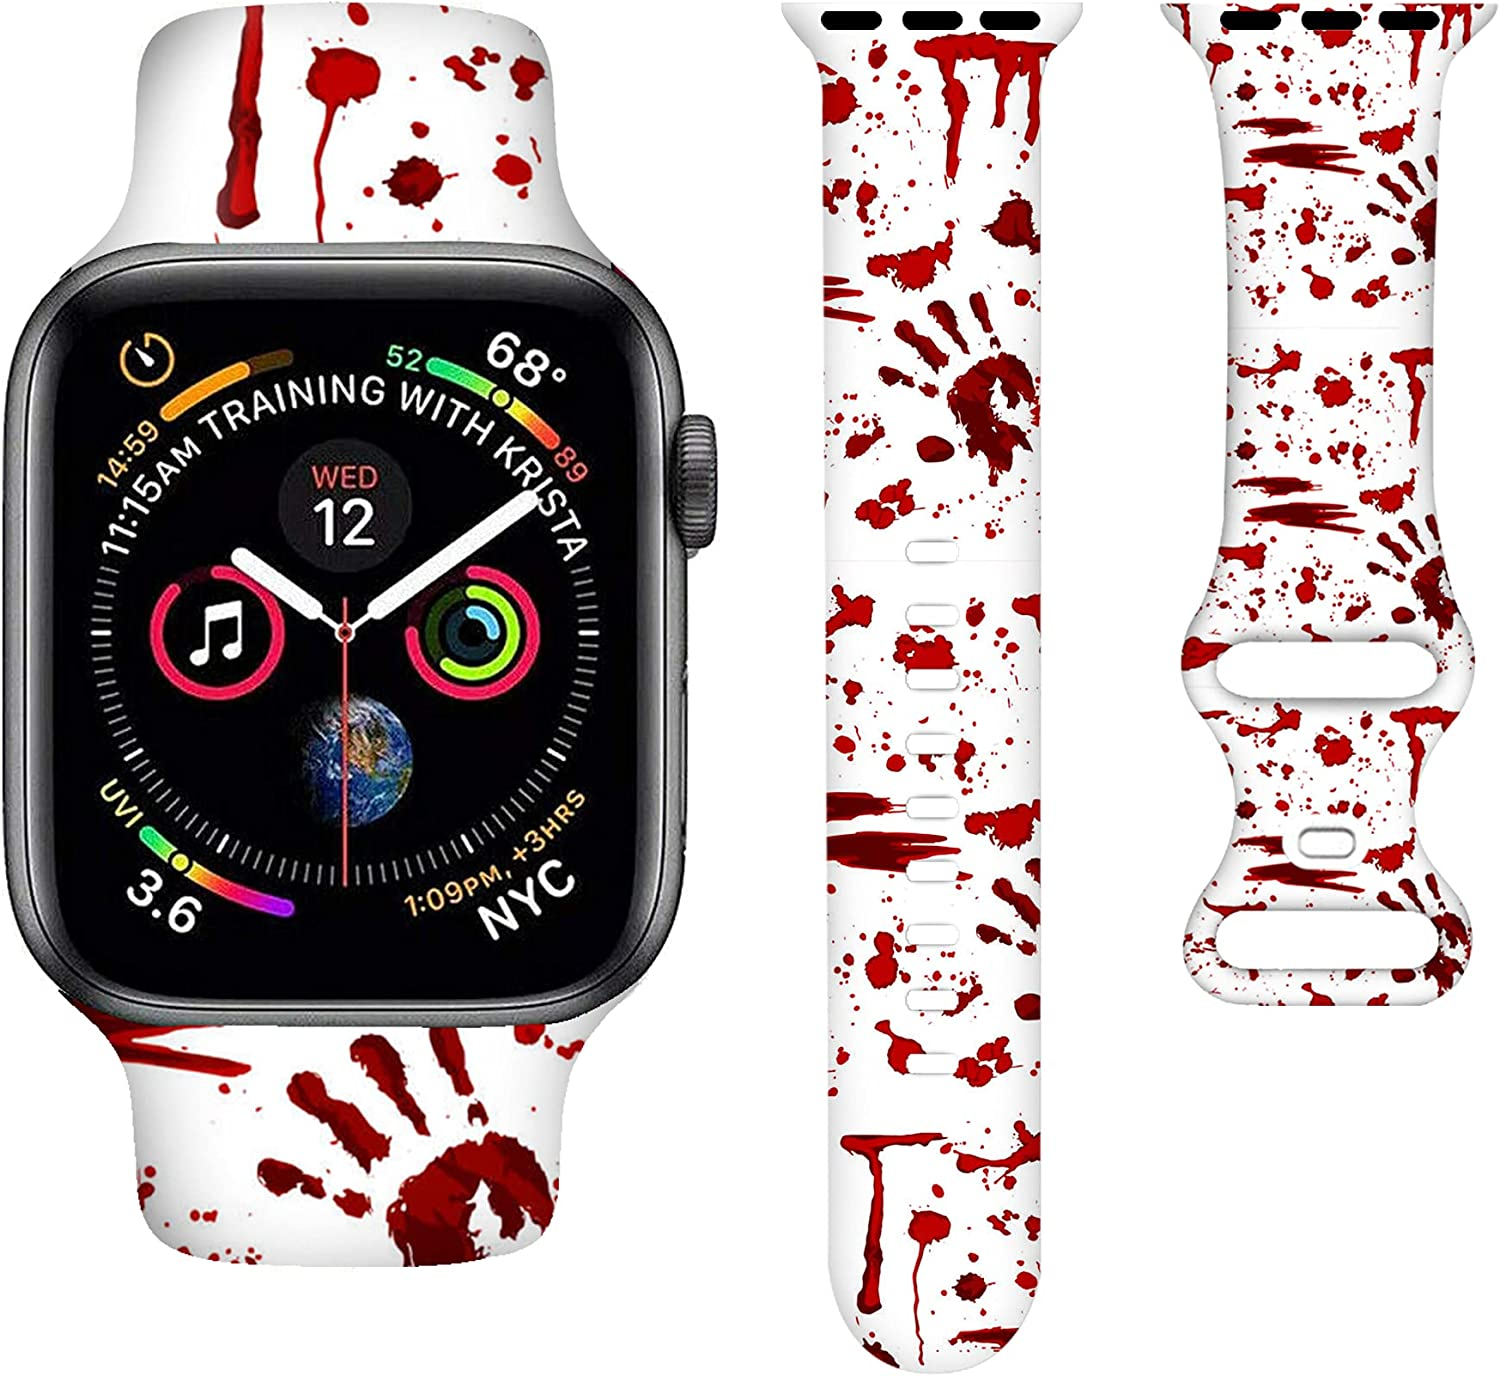 Halloween Watch Bands Cartoons Smart Watch Band Compatible iWatch Soft Silicone Replacement Wristband Bands Universal All Black White 38mm /40mm for Women Men